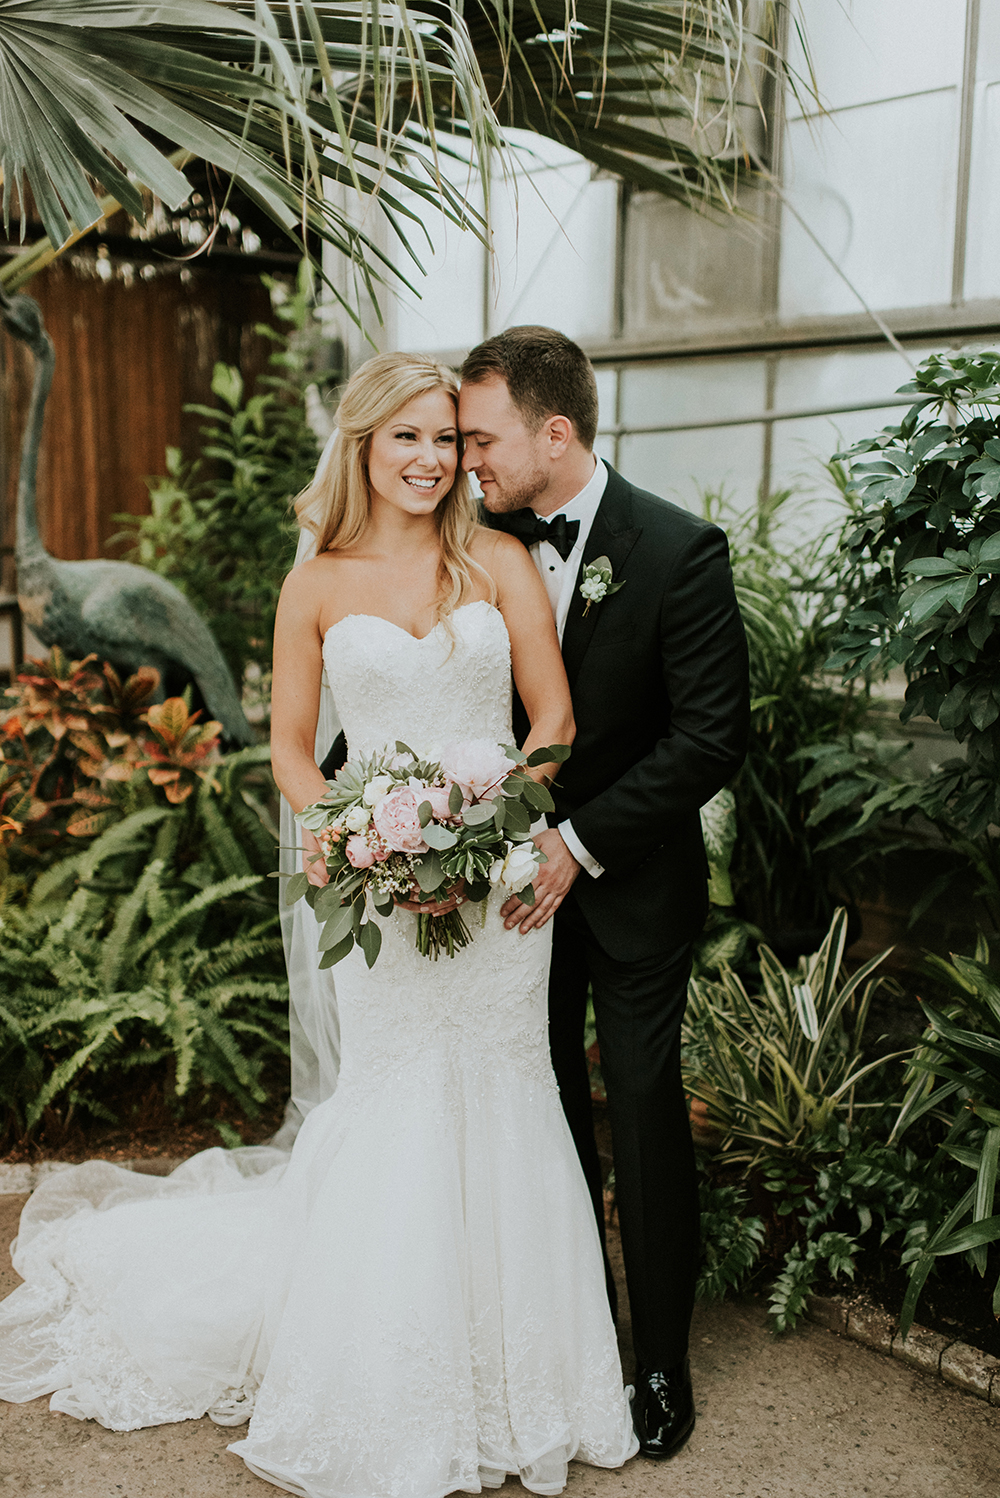 Black Tie Philadelphia Wedding with a Boho Twist - photo by M2 Photography https://ruffledblog.com/black-tie-philadelphia-wedding-with-a-boho-twist